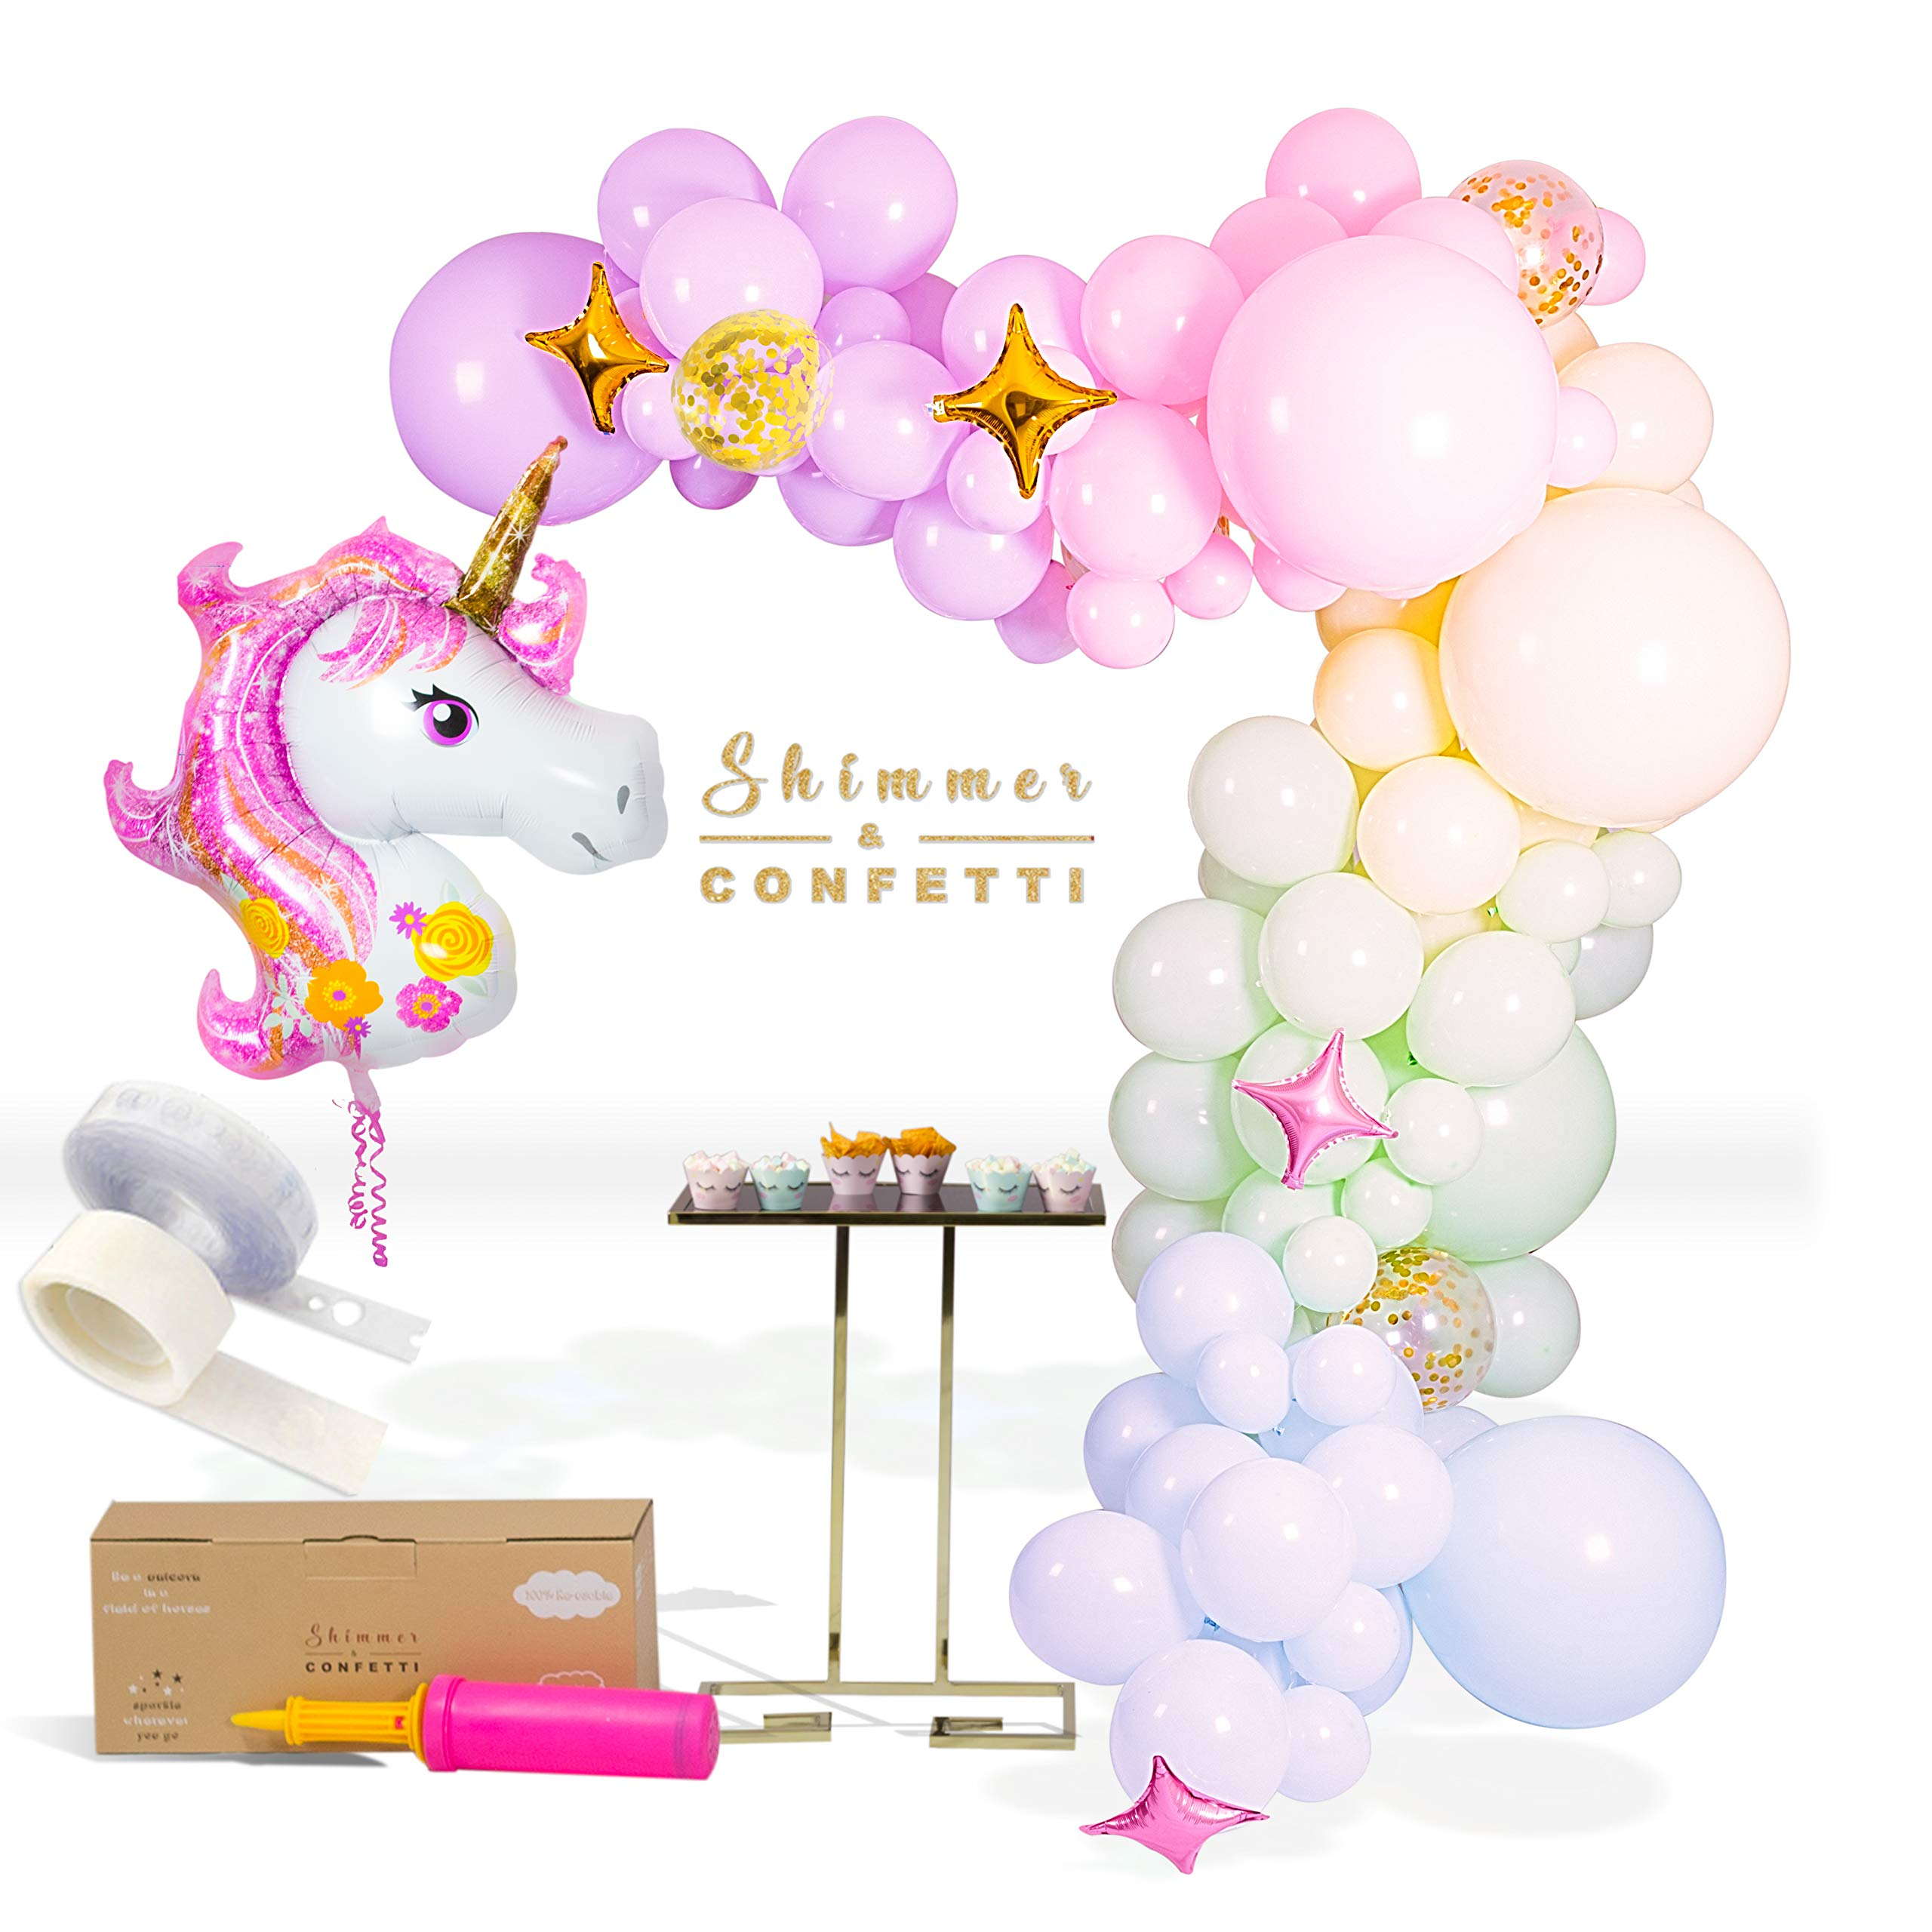 Shimmer and Confetti 133 Pack 16 Foot Premium Pastel Unicorn Balloon Arch and Garland Kit with Pink, Purple, Yellow, Green, Blue Balloons, Confetti Balloons, 16 Foot Balloon Strip, Glue Dots, Pump